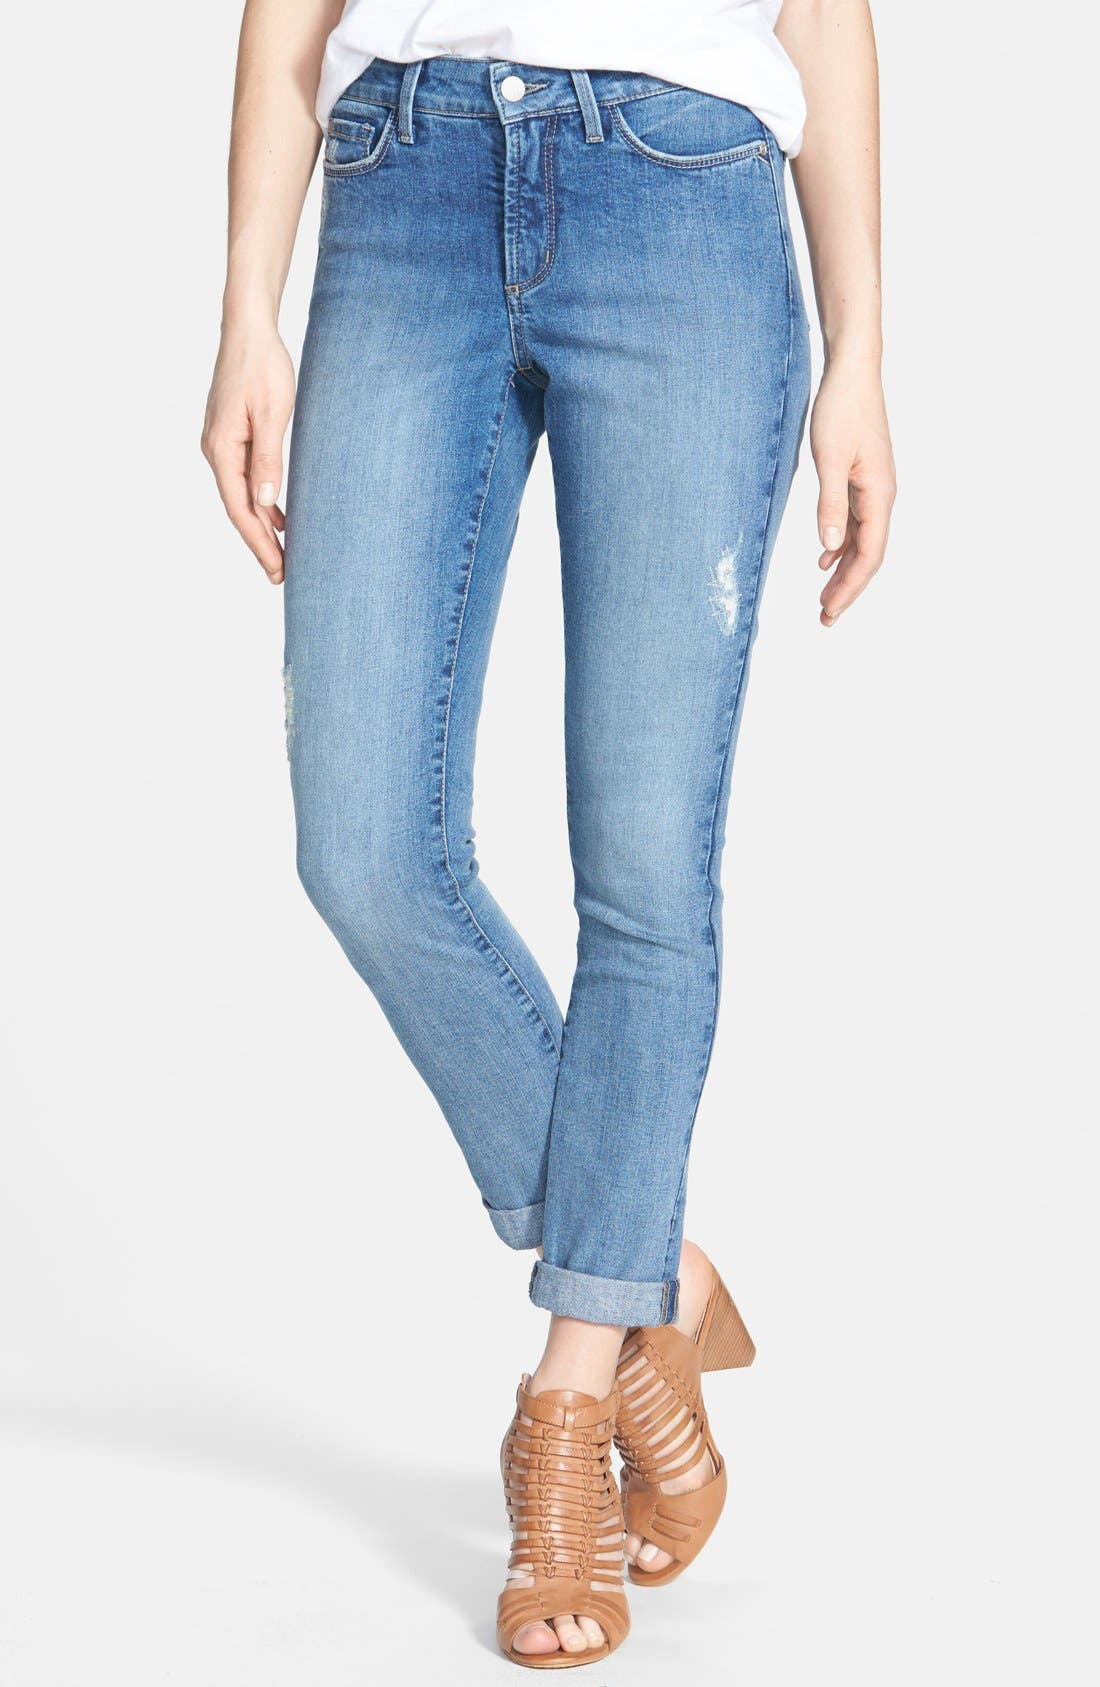 Alternate Image 1 Selected - NYDJ 'Anabelle' Stretch Skinny Jeans (Angora Lake) (Regular & Petite)